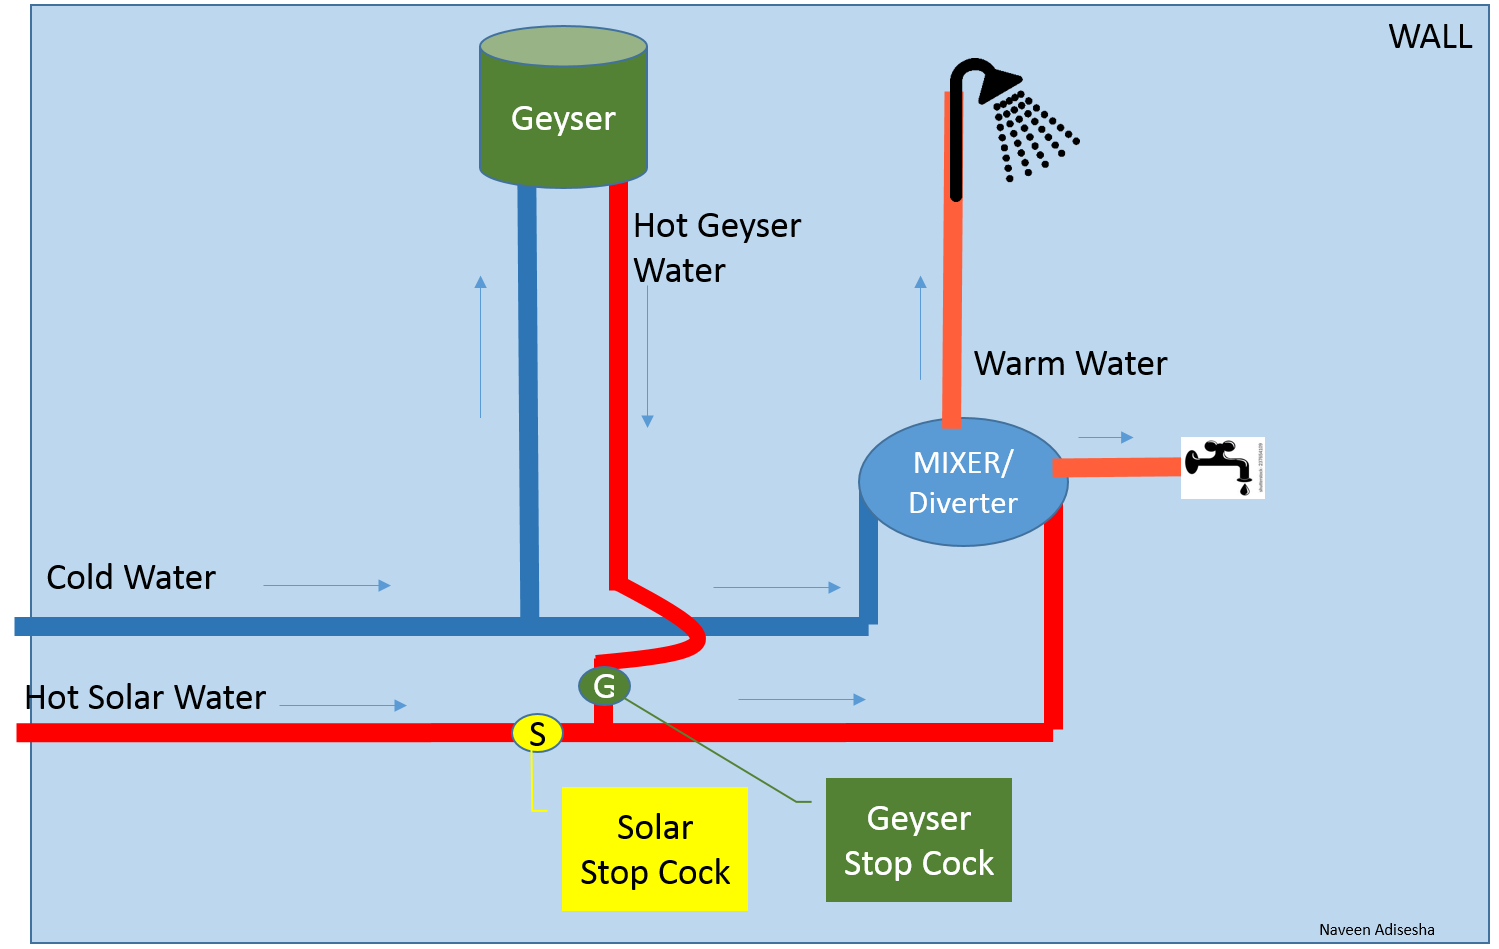 Solar And Geyser Plumbing Drawing For Bathrooms Naveen Adisesha